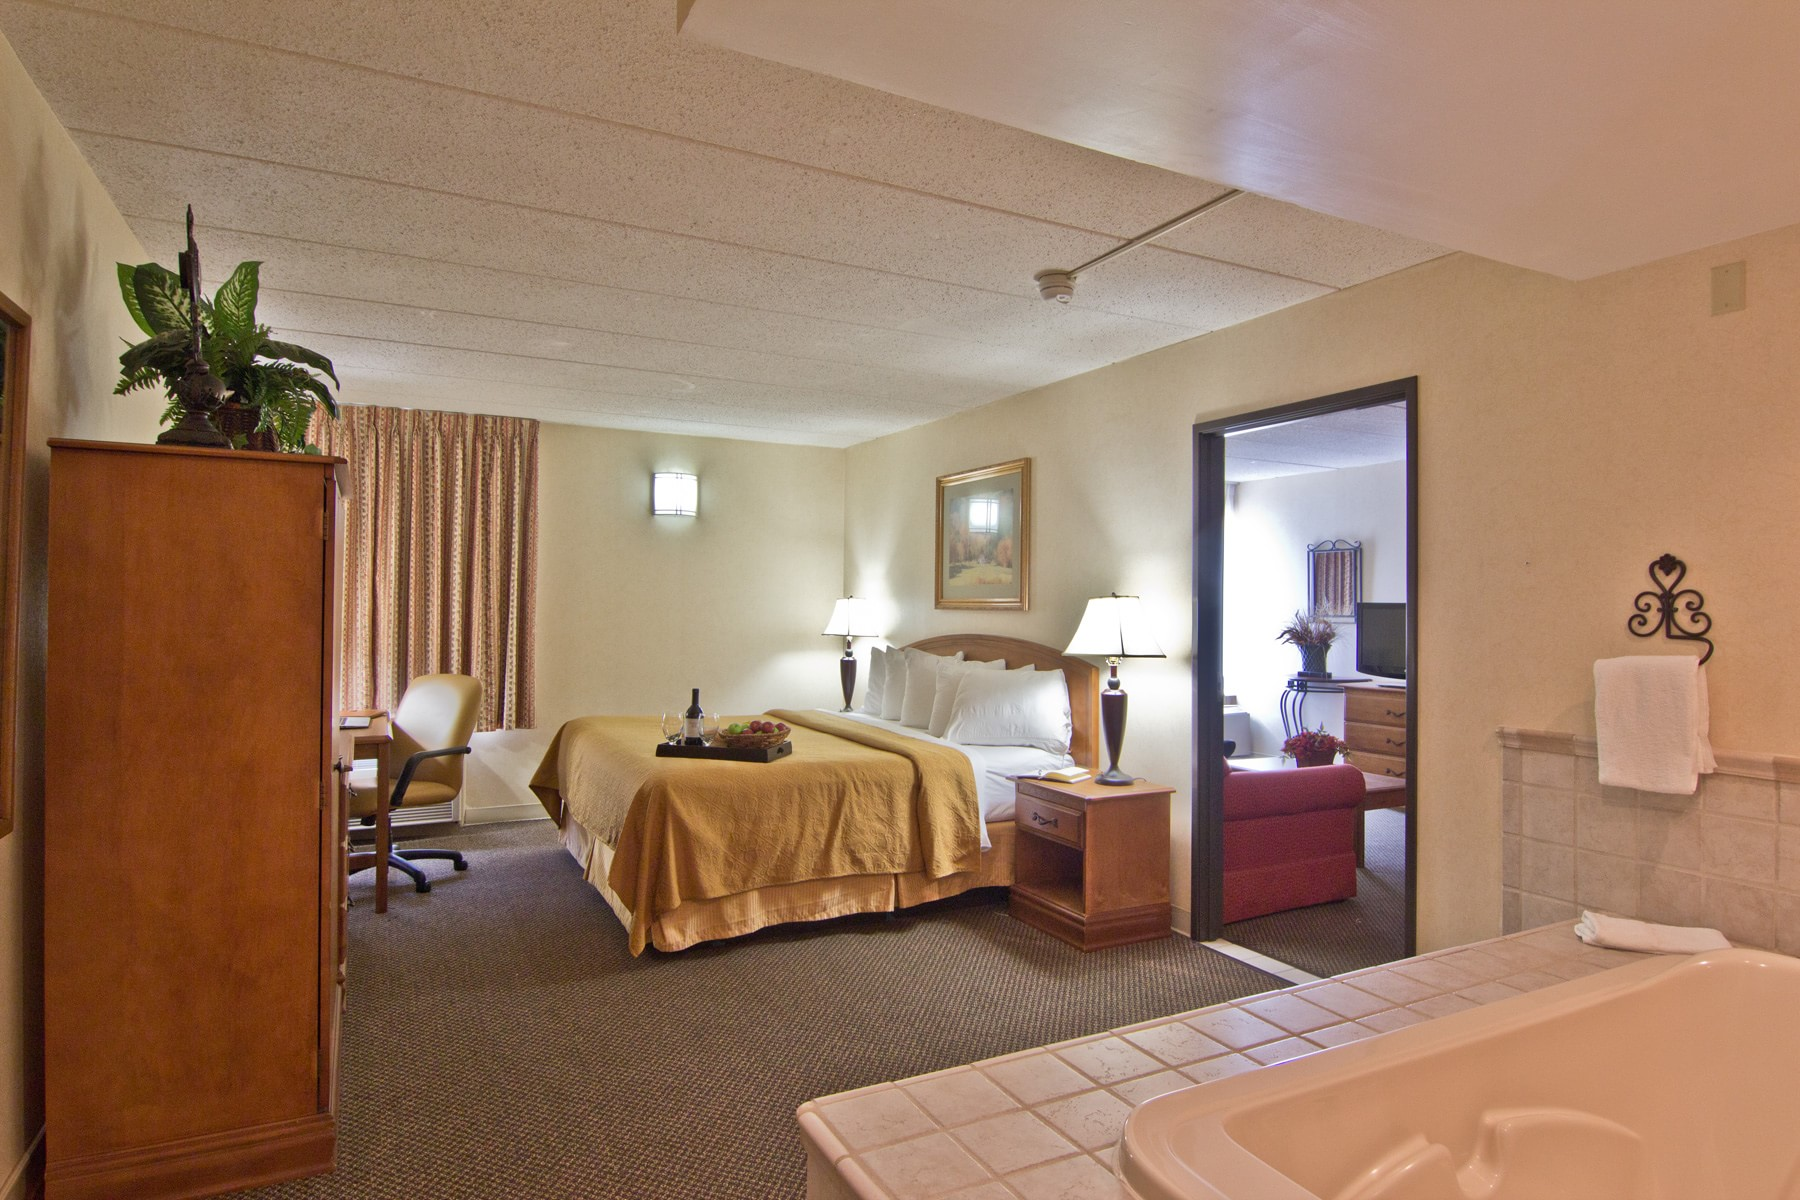 Guest Rooms At Quality Inn Chillicothe Ohio